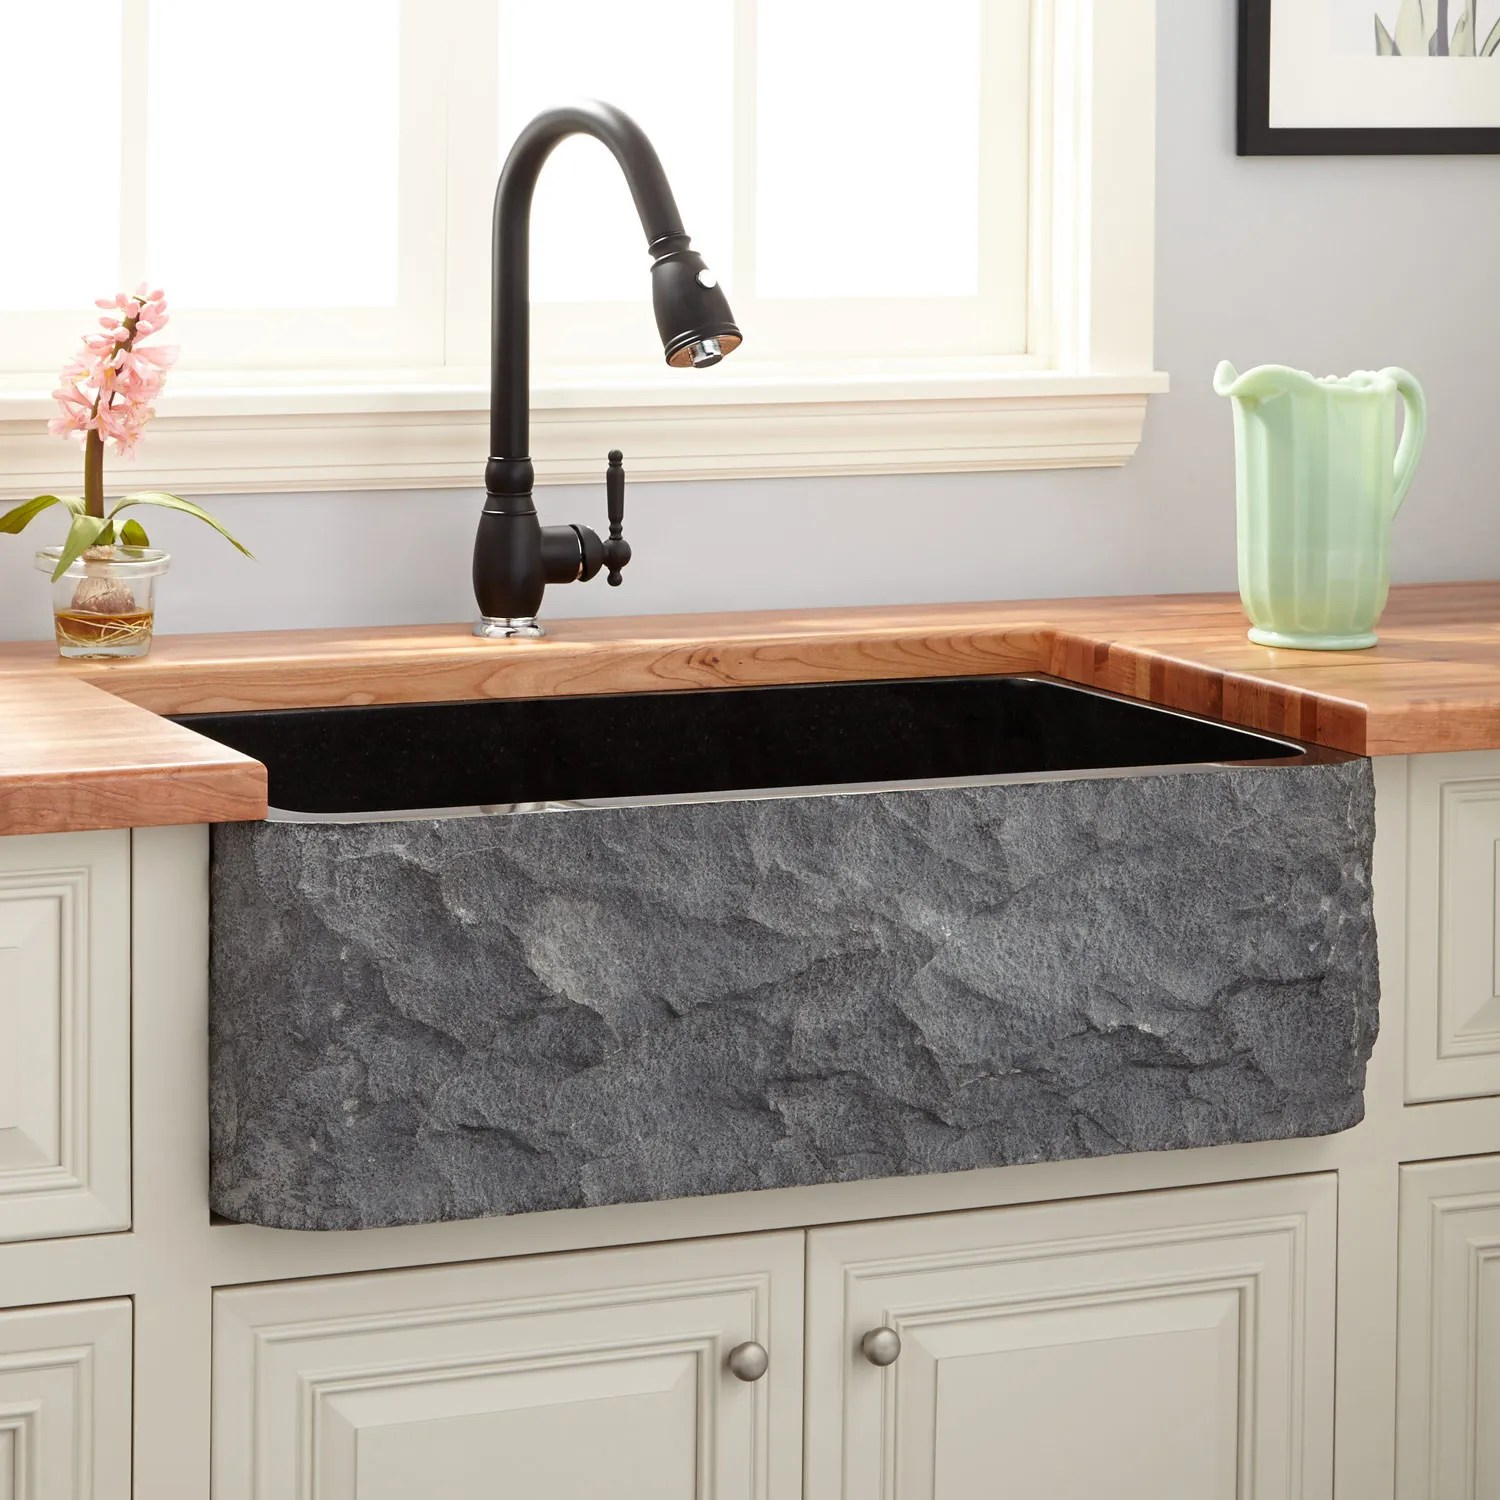 30 black polished granite single bowl farmhouse sink with chiseled apron farmhouse faucet kitchen The Black color looks sleek and contemporary but still exudes the timeless charm of traditional farmhouse sinks For a cohesive revamp add a faucet in